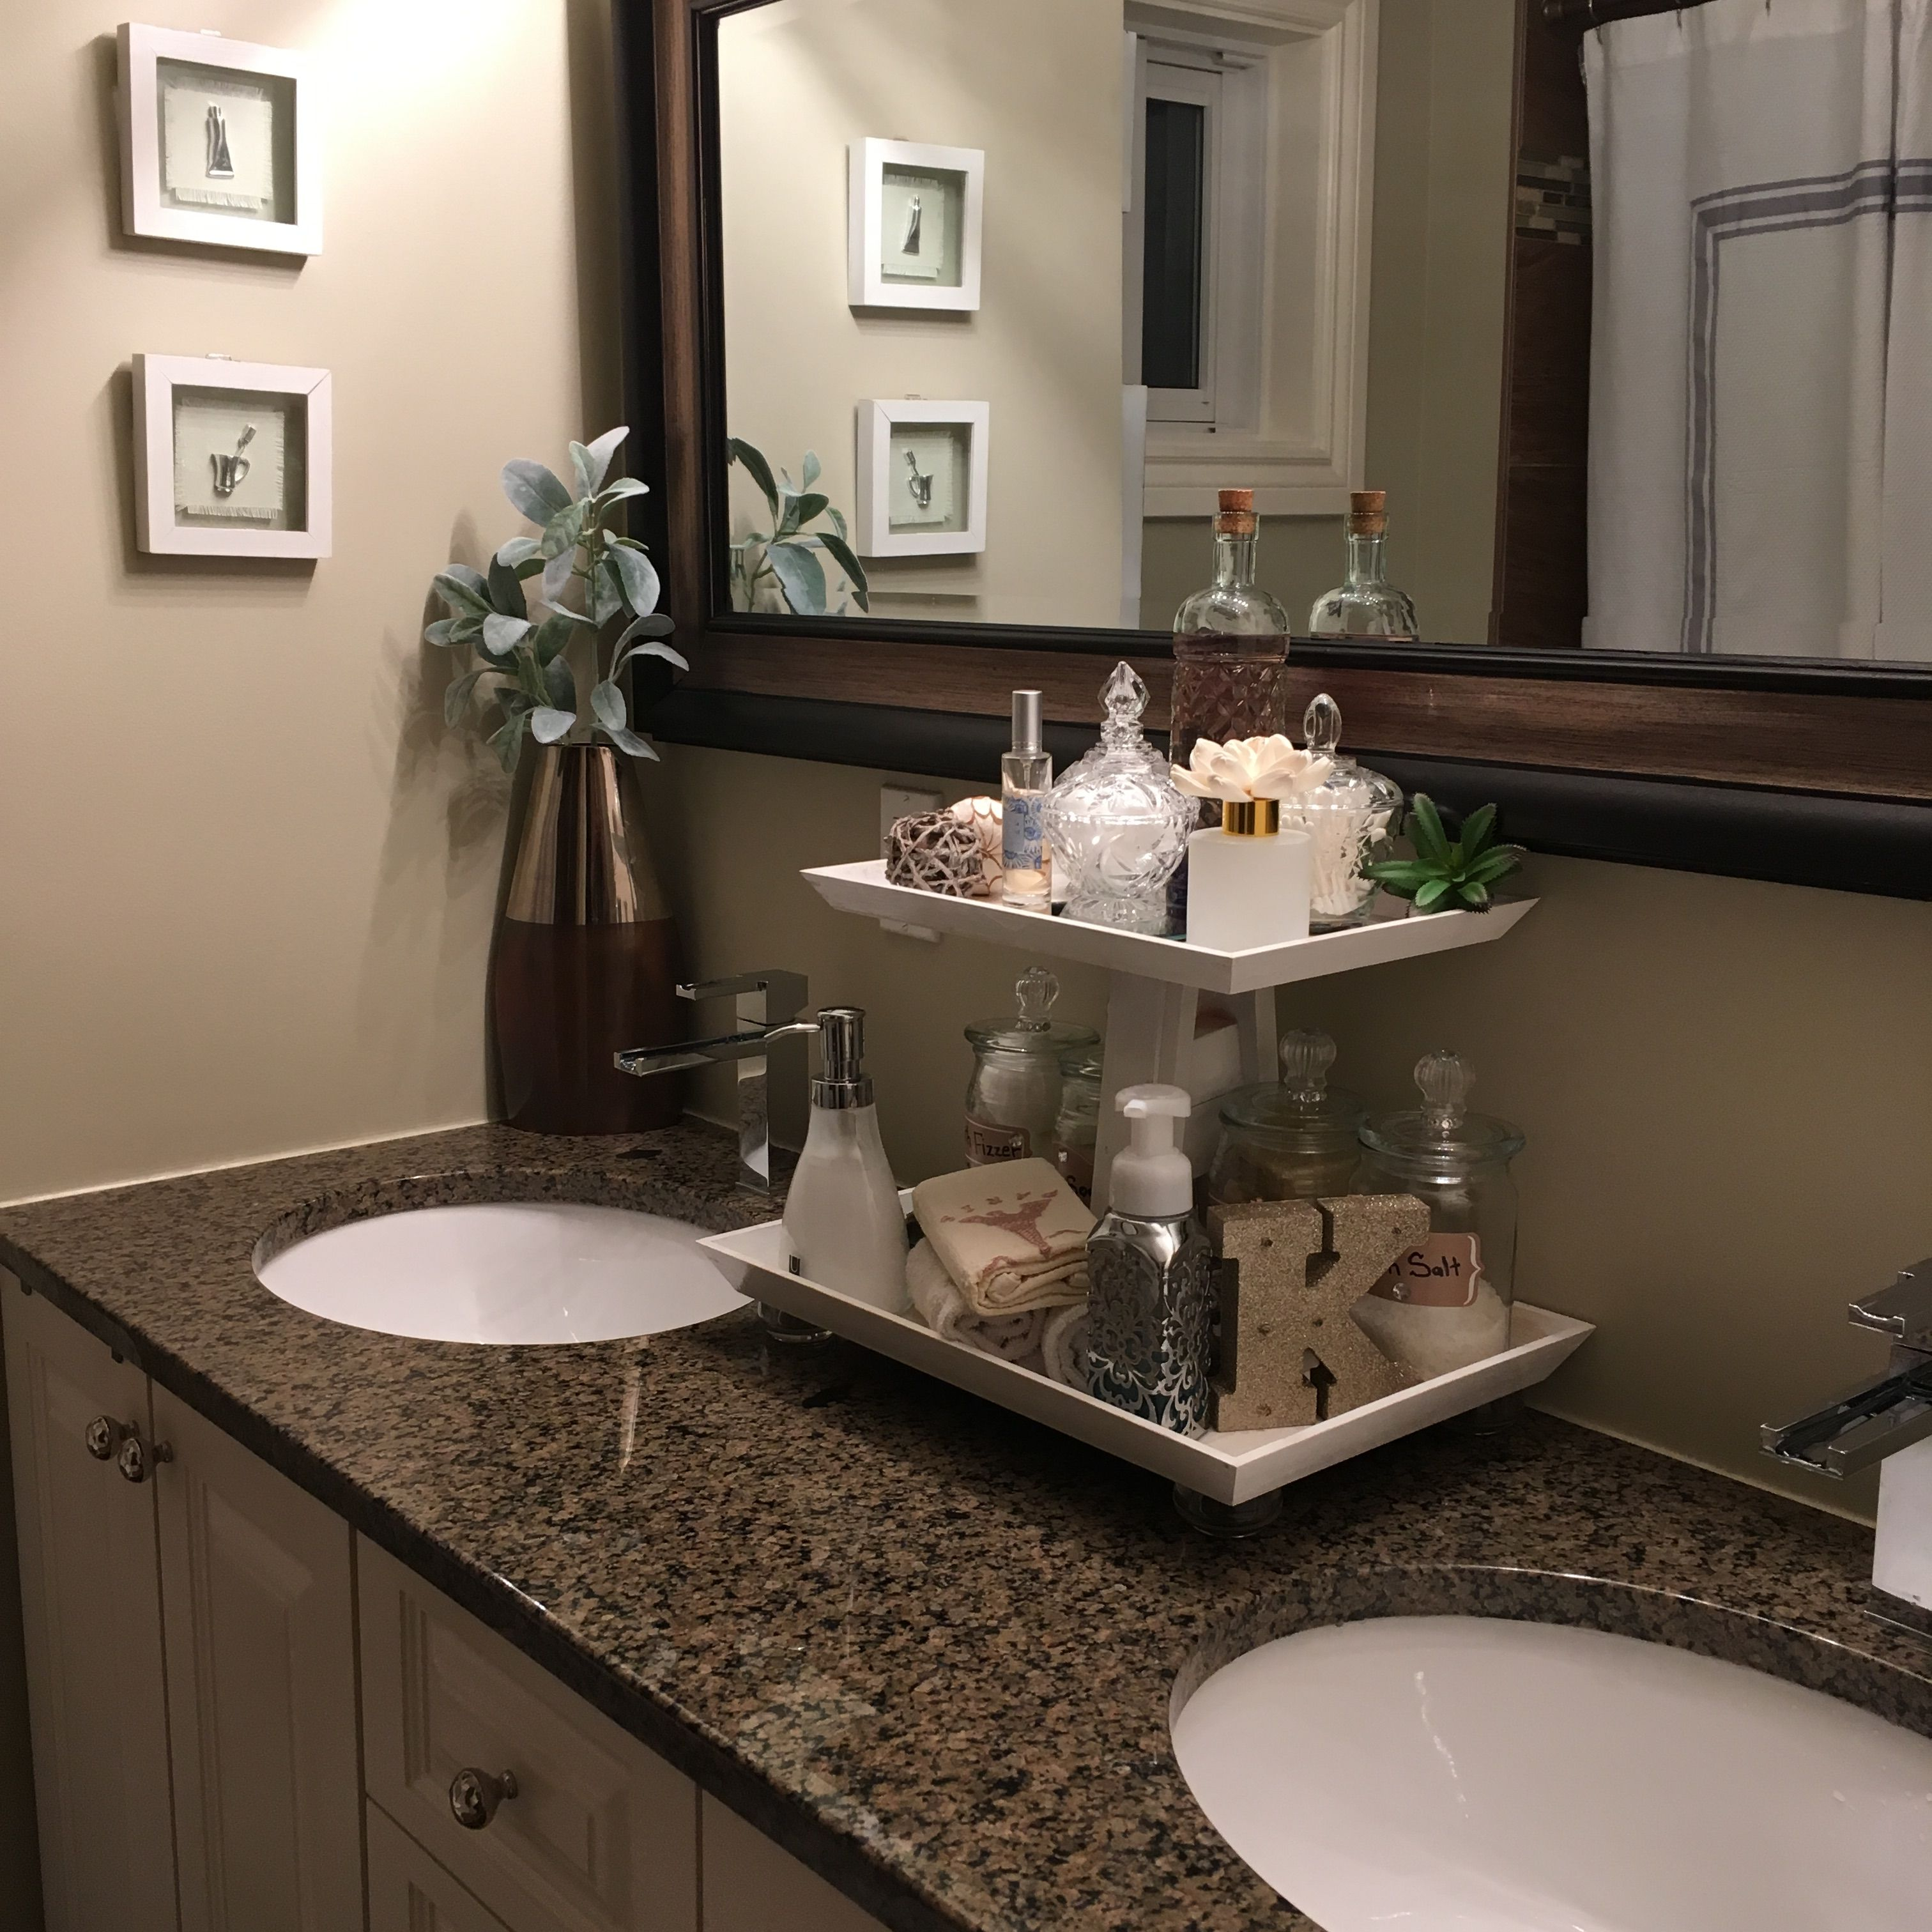 Awesome Bathroom Counter Decoration Ideas